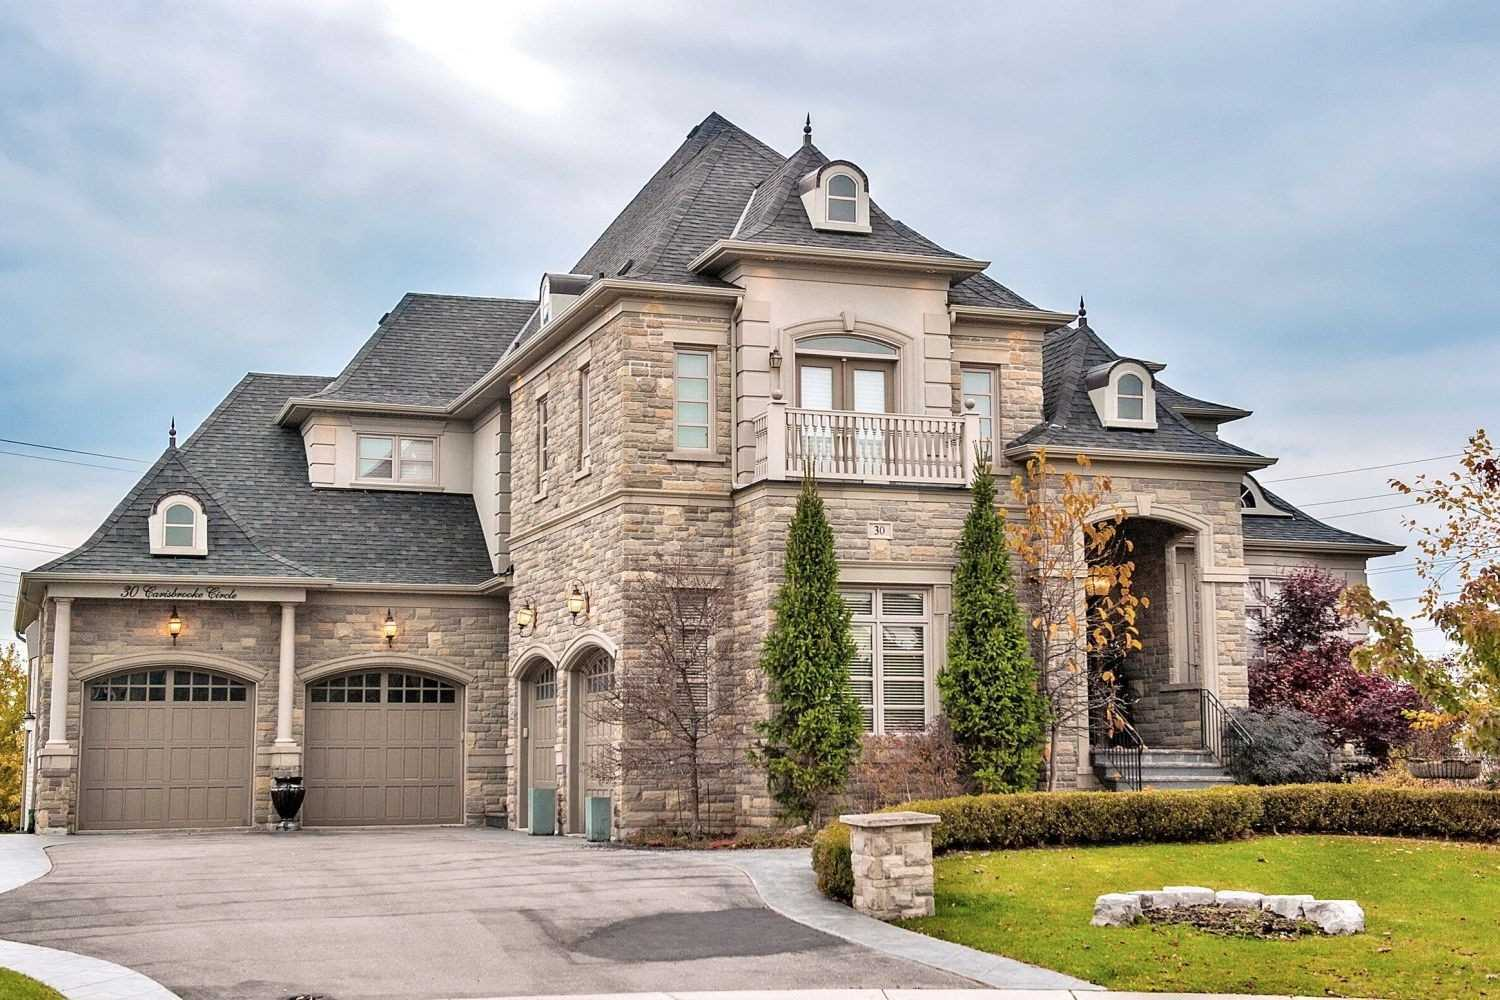 Masterpiece Majestically Lays On 1.05 Acre. Simply One Of The Best In Prestigious Belfontain. Timeless Chateau Architecture Complete W Superb Interior Design. 4+1 Bdrms, 5 Car Gar, Approx 6200 Sf W/A Fin'd W/O Bsmnt. W/Wrought Iron Fence. Downsview Kit W/Granite Counters & Top Of Line Built-In Appl's. Sep Pantry W/Freezer.Servery.Hand Painted Dining Rm Walls Are A Masterpiece! Drapes Are Silk Or Silk Blend. Swarovsky & Murano Glass Chandelier